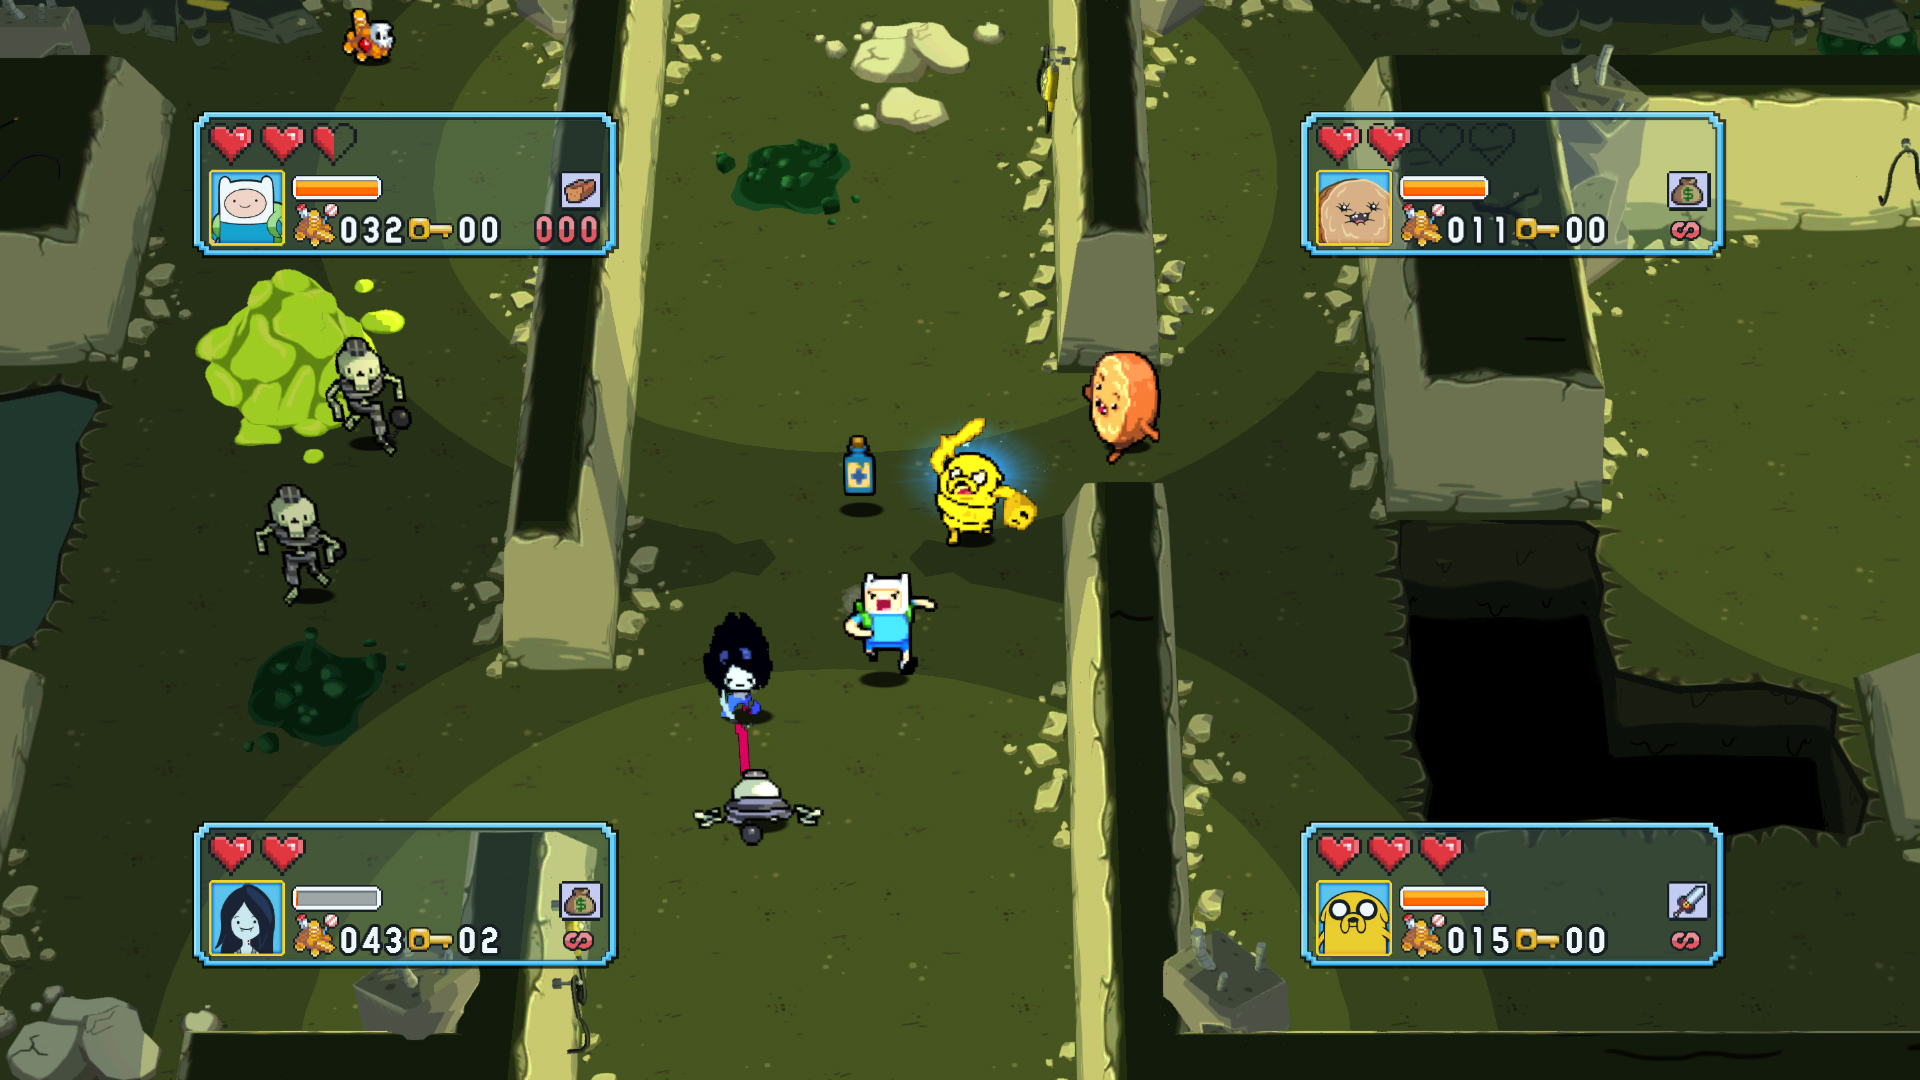 Amazing Adventure Time: Explore The Dungeon Because I Don't Know! Pictures & Backgrounds